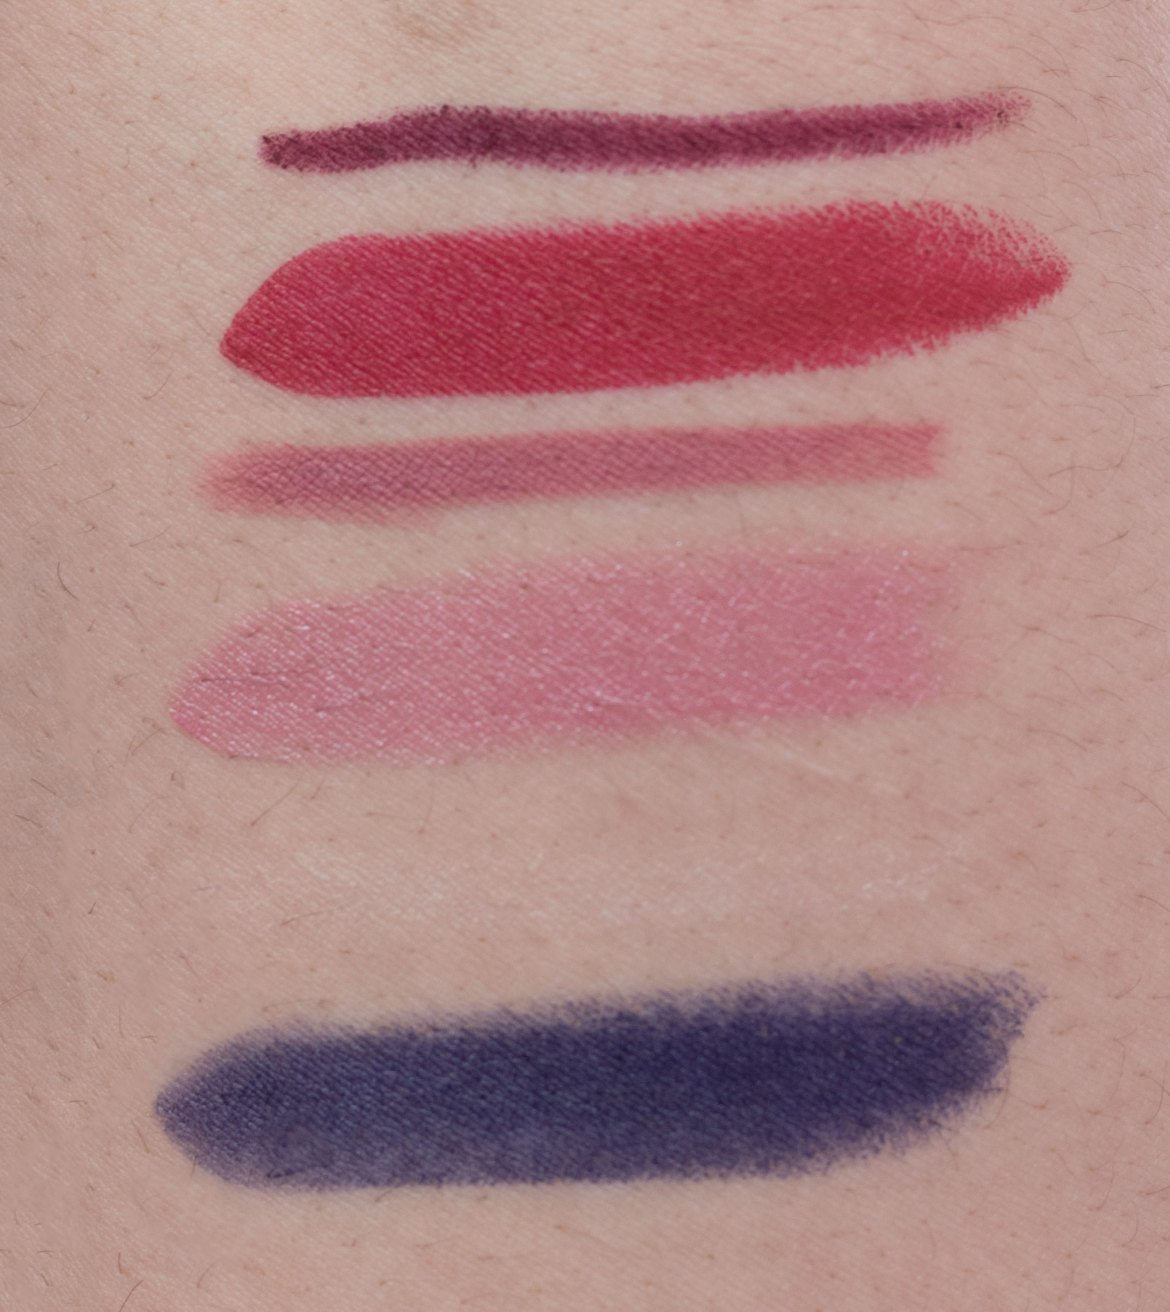 Top to bottom: Rich Wine, Rich Ruby, Dusty Rose, Born With It, Clear, Midnight Blue